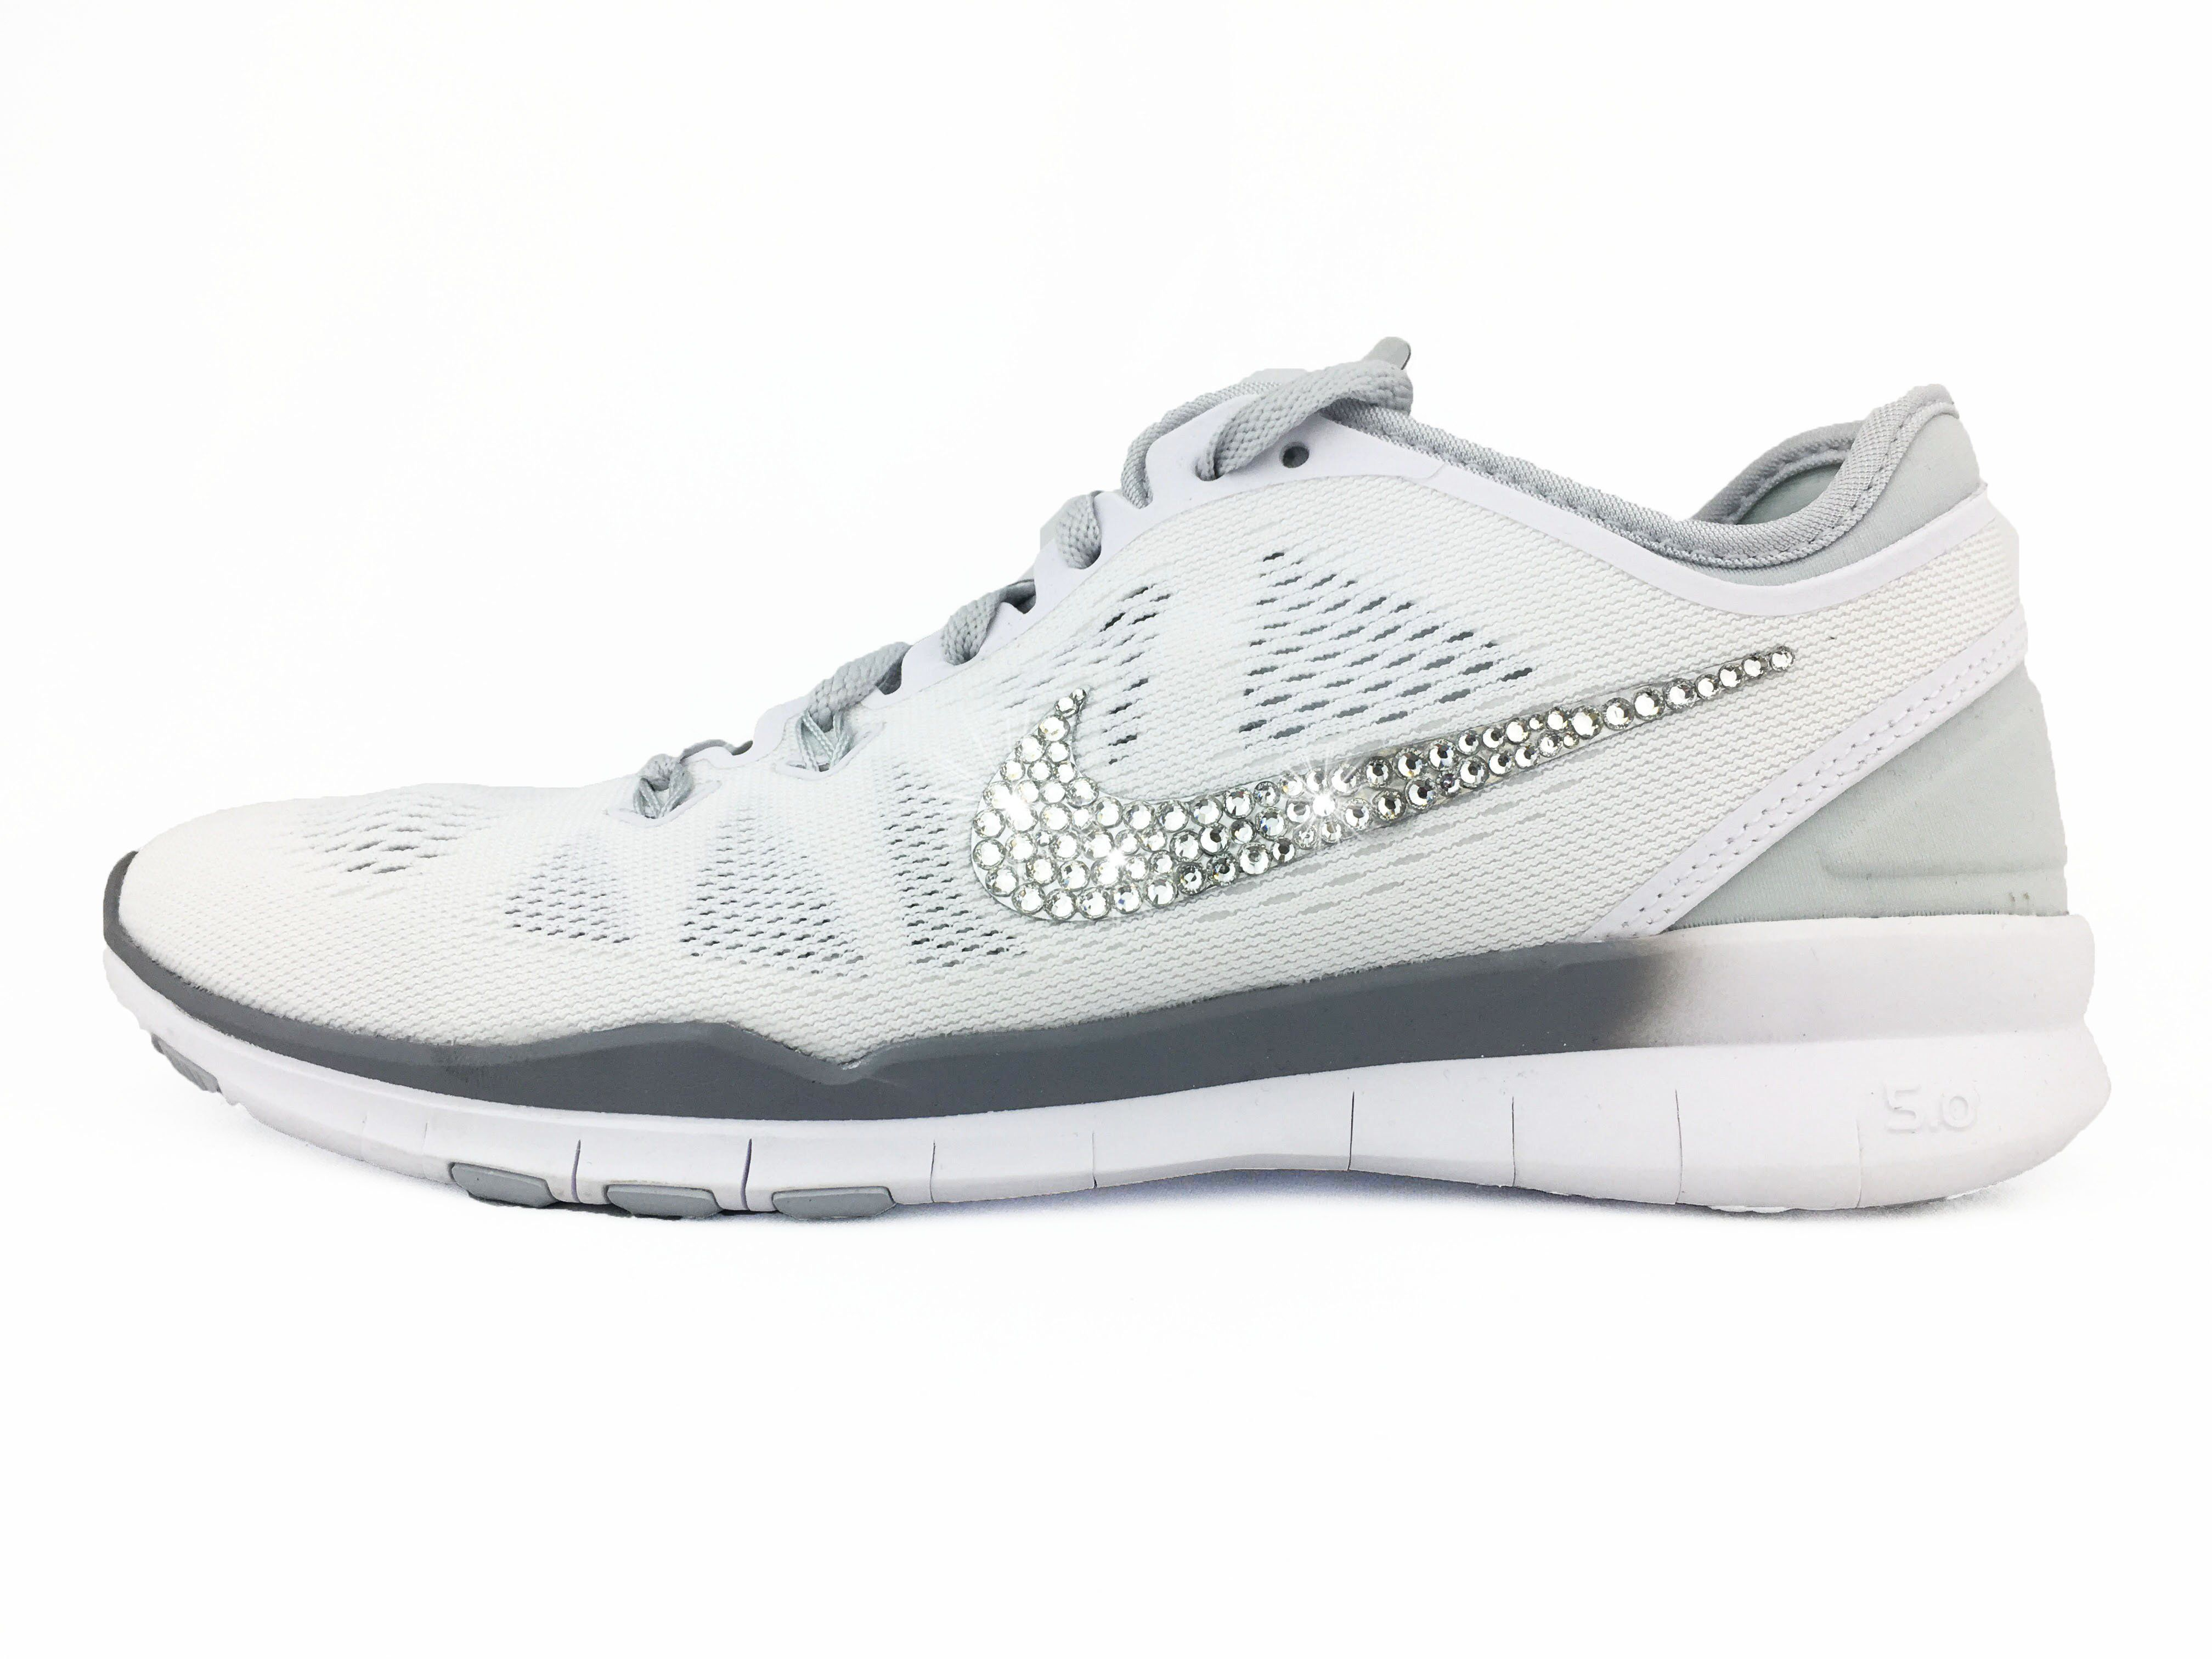 CLEARANCE - Nike Free 5.0 TR Fit 5 - Crystallized Swarovski Swoosh -  White Silver 94327a613b23